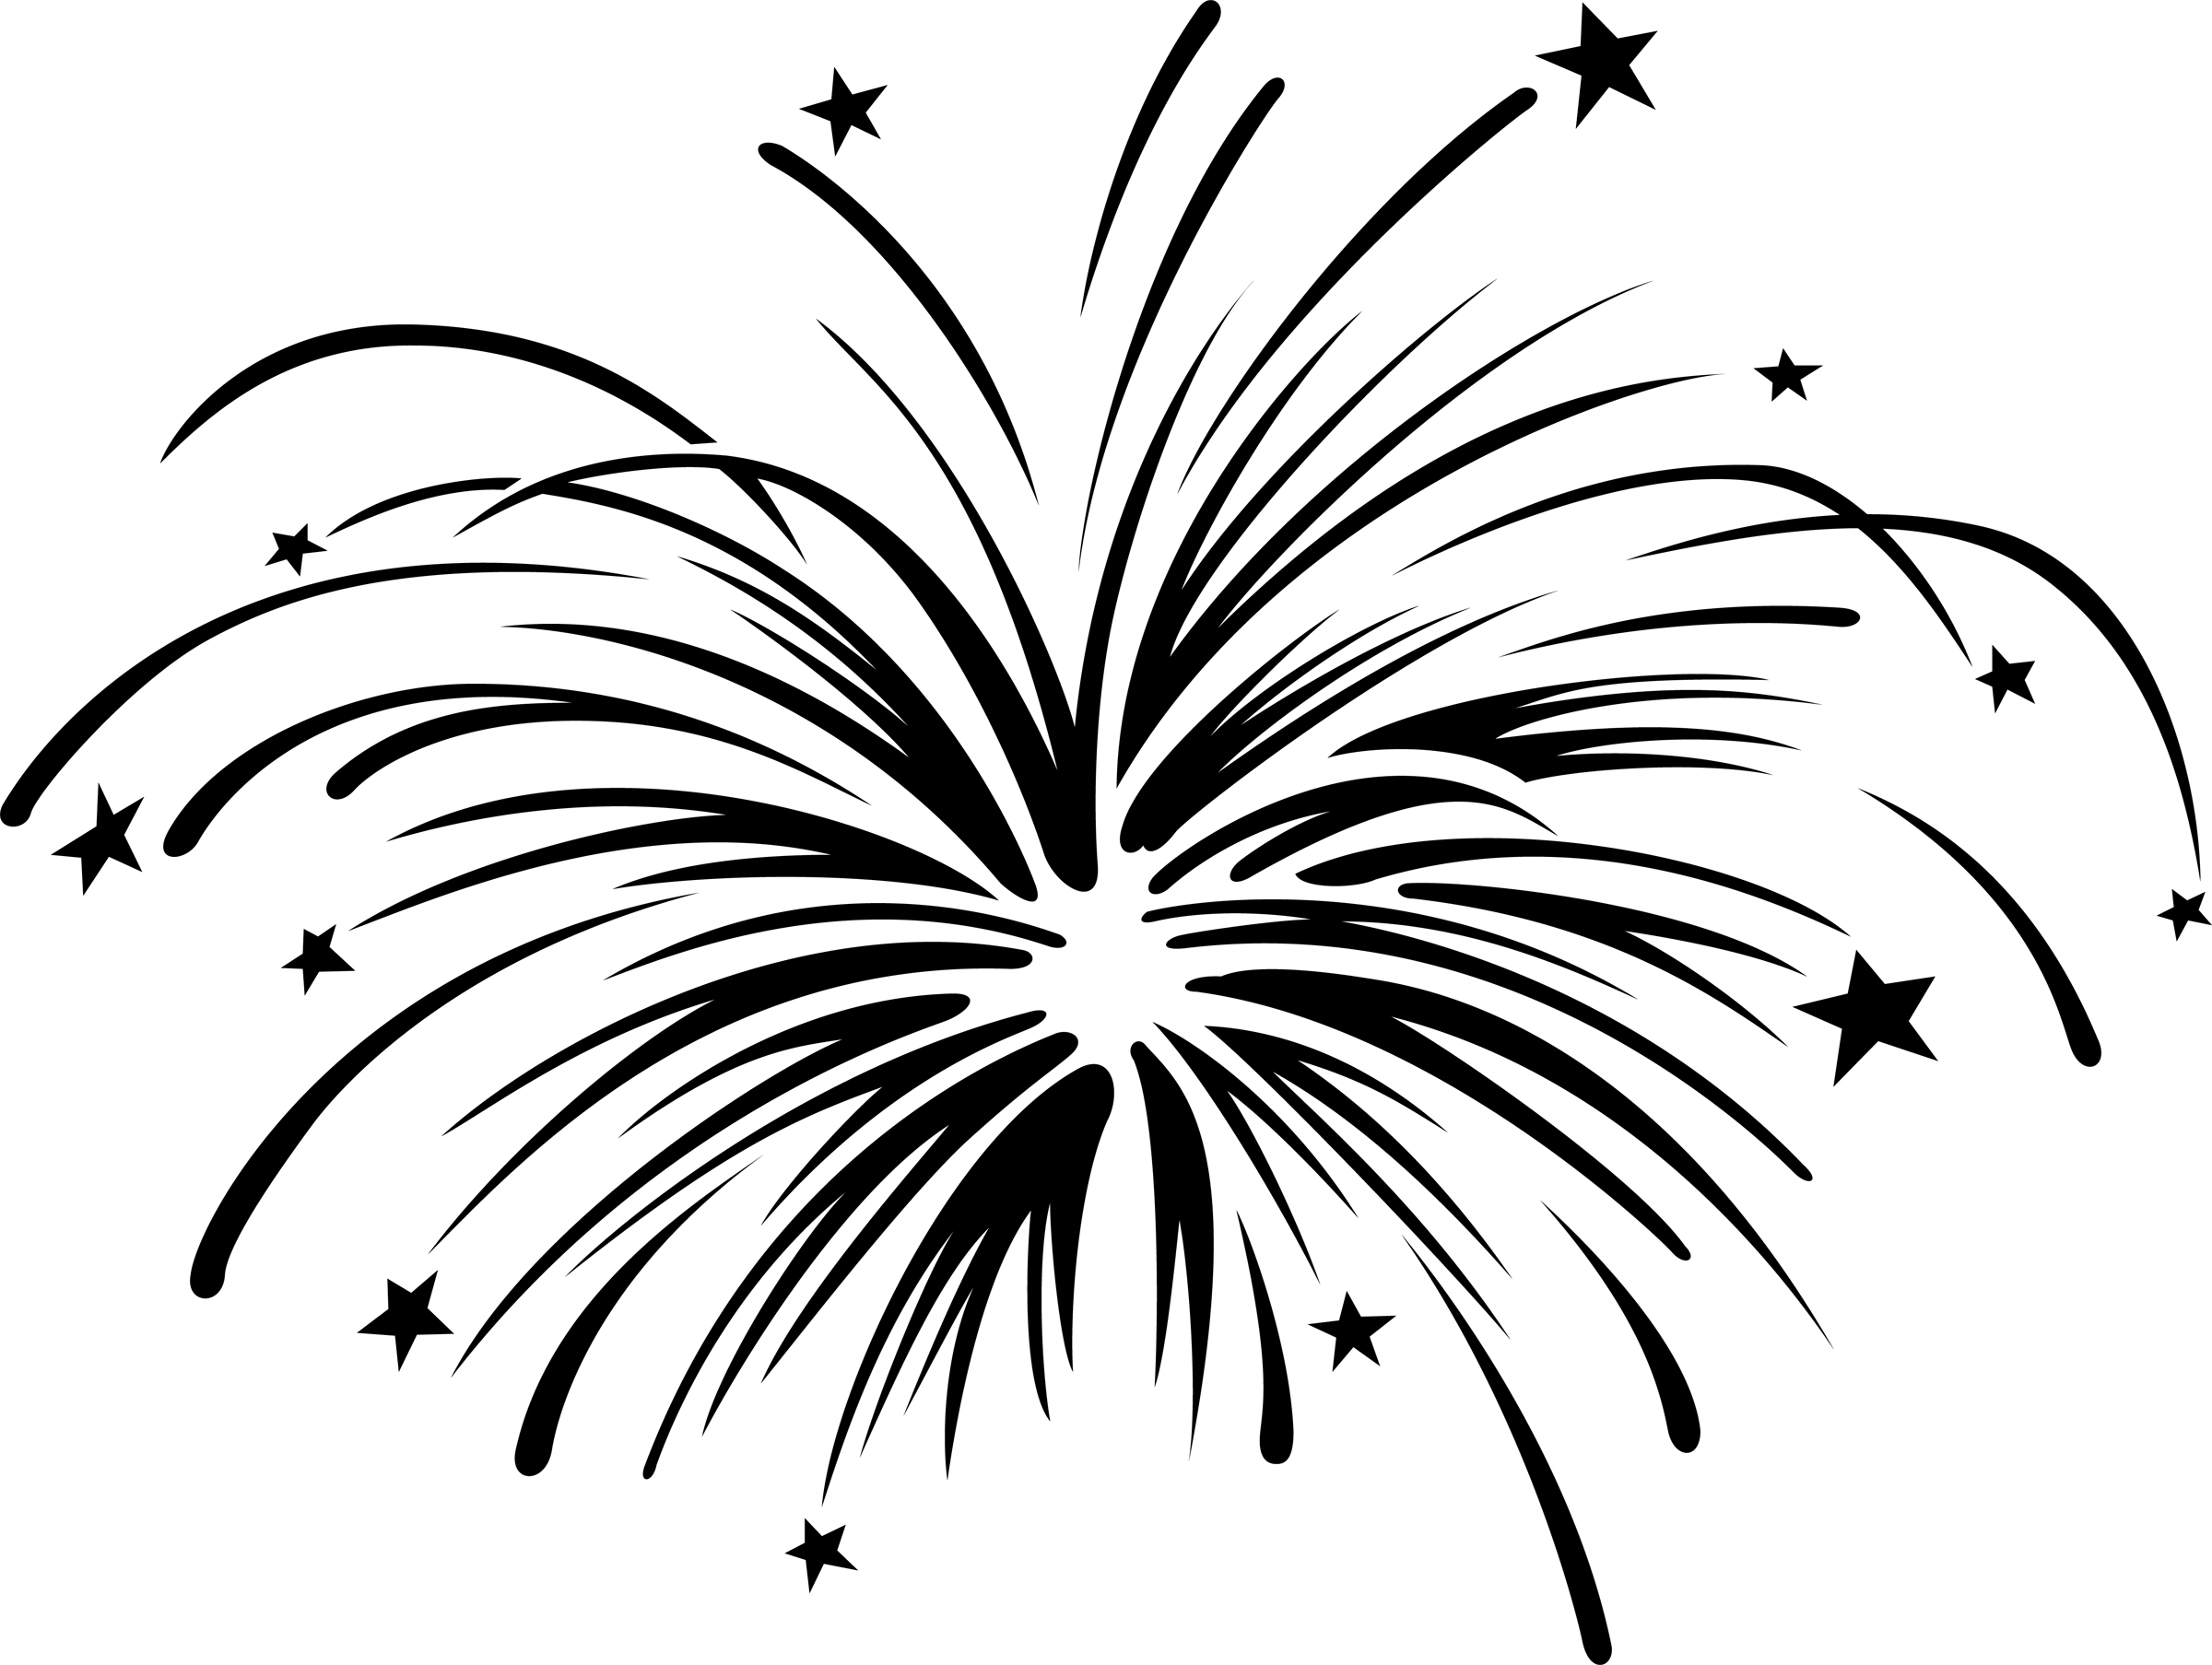 Drawing Lines Year : Fireworks clipart black and white panda free